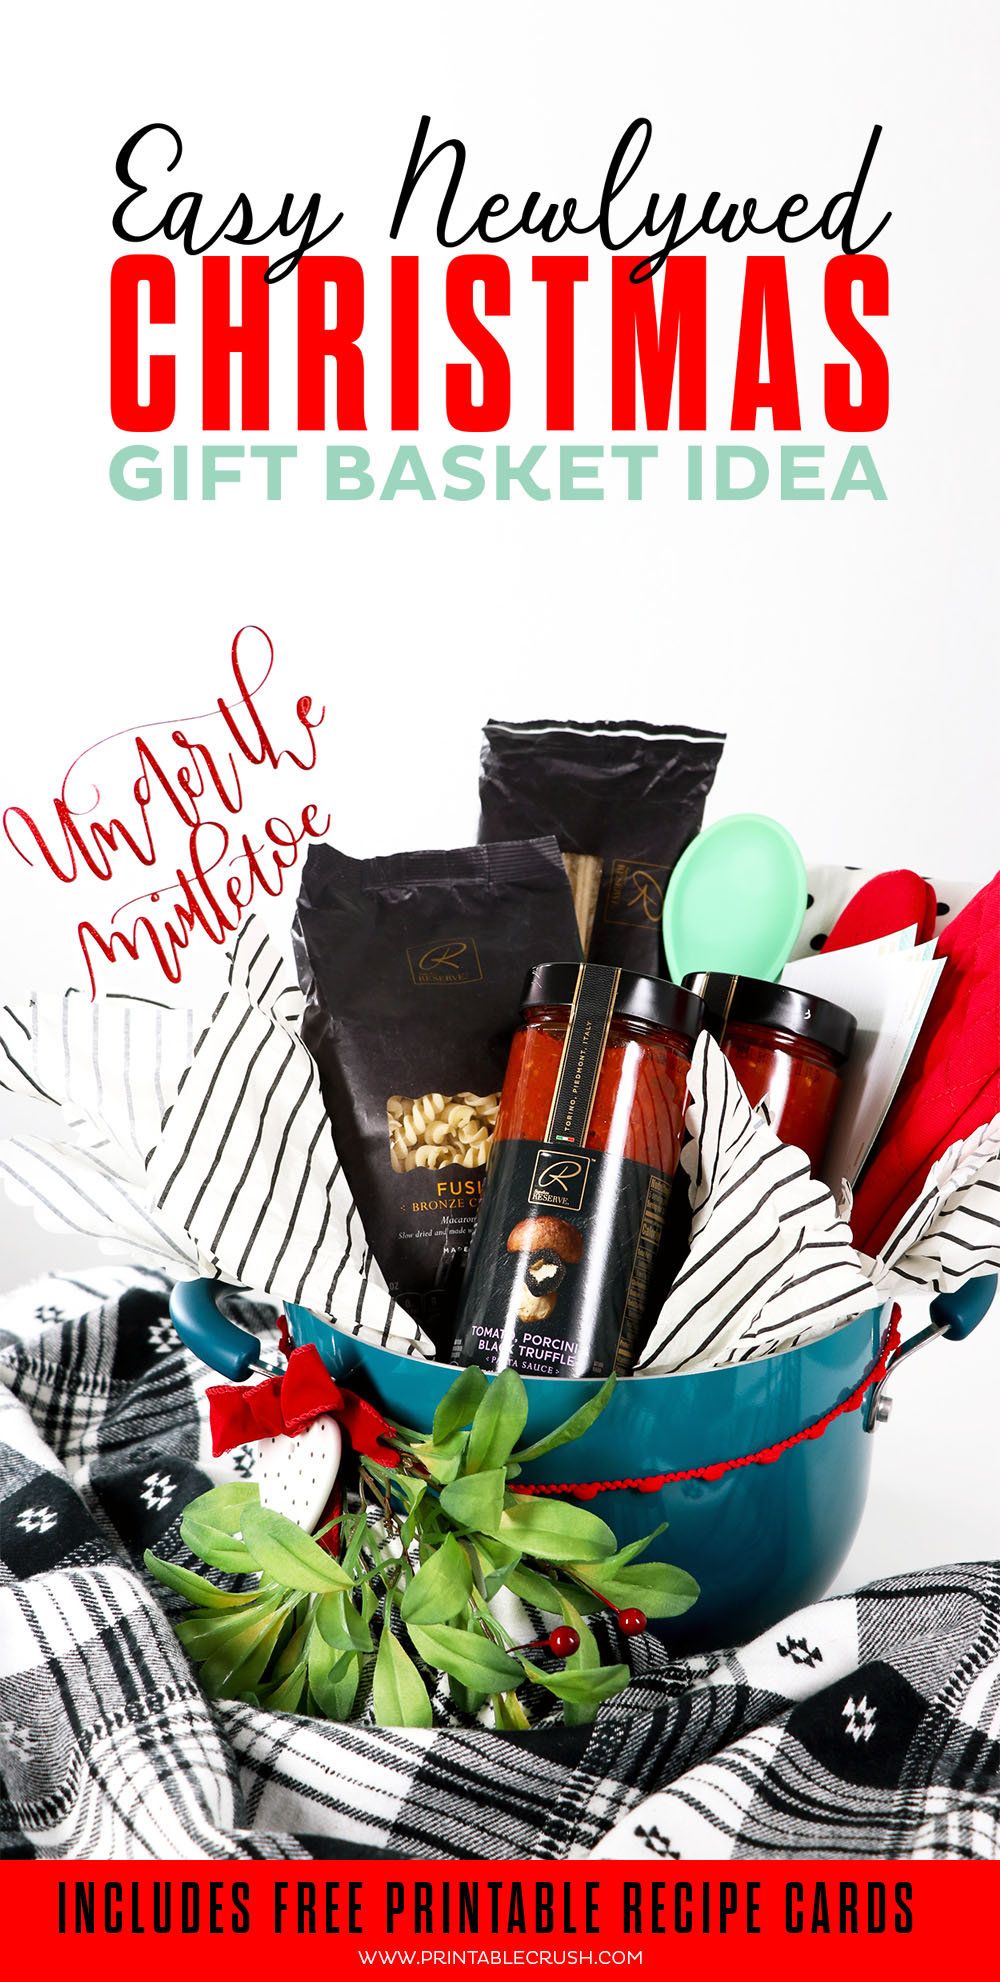 This Newlywed Christmas Gift Basket is filled with • Signature RESERVE™ pasta and sauces, pot holders, and recipe cards - something every newlywed couple needs in a new home!